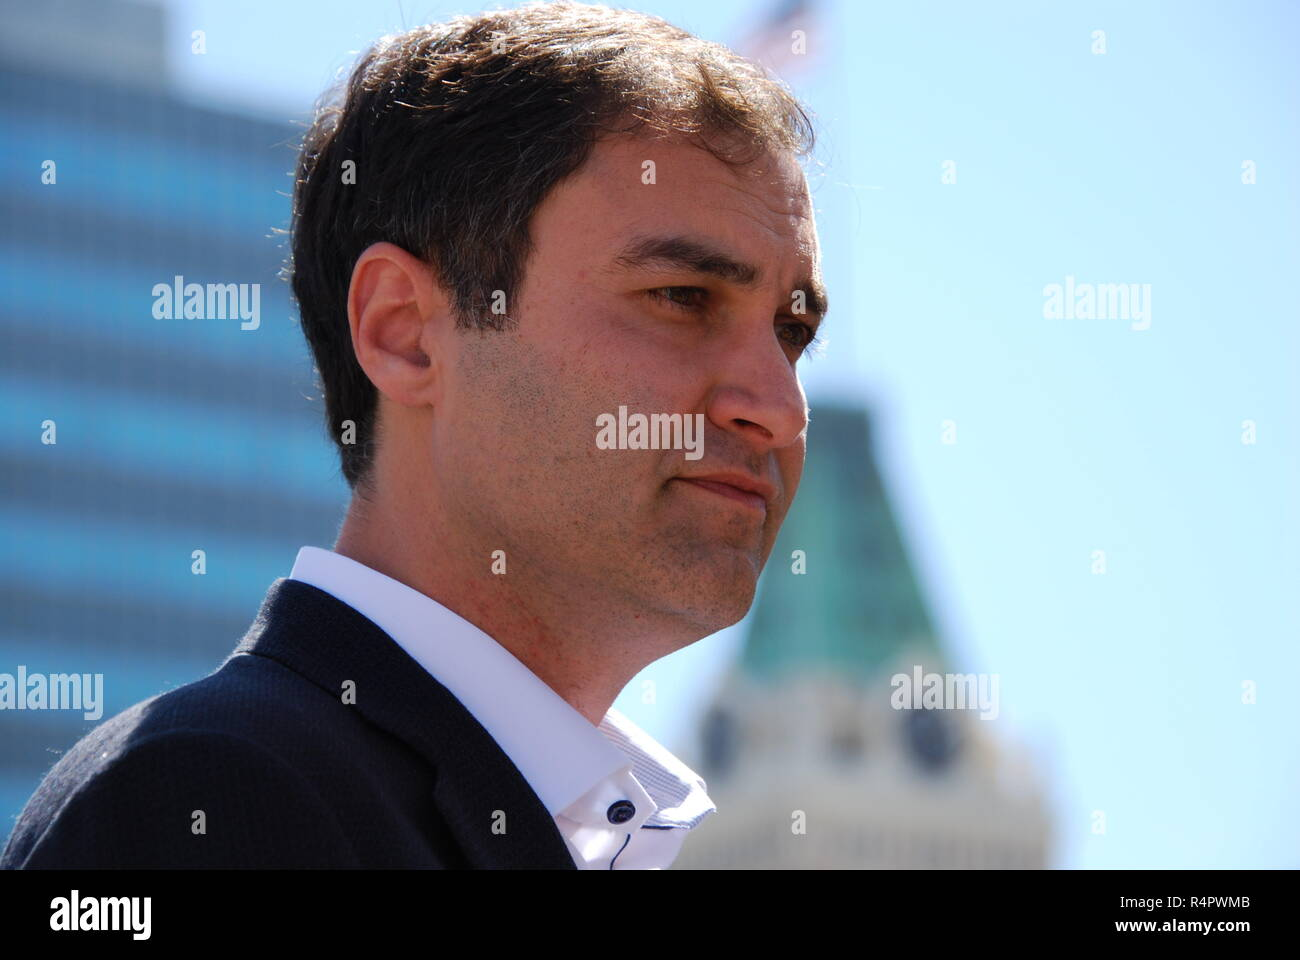 Oakland A's President Dave Kaval photographed during a news conference on the roof of Oakland City Hall ahead of the 2018 Major League Baseball season - Stock Image